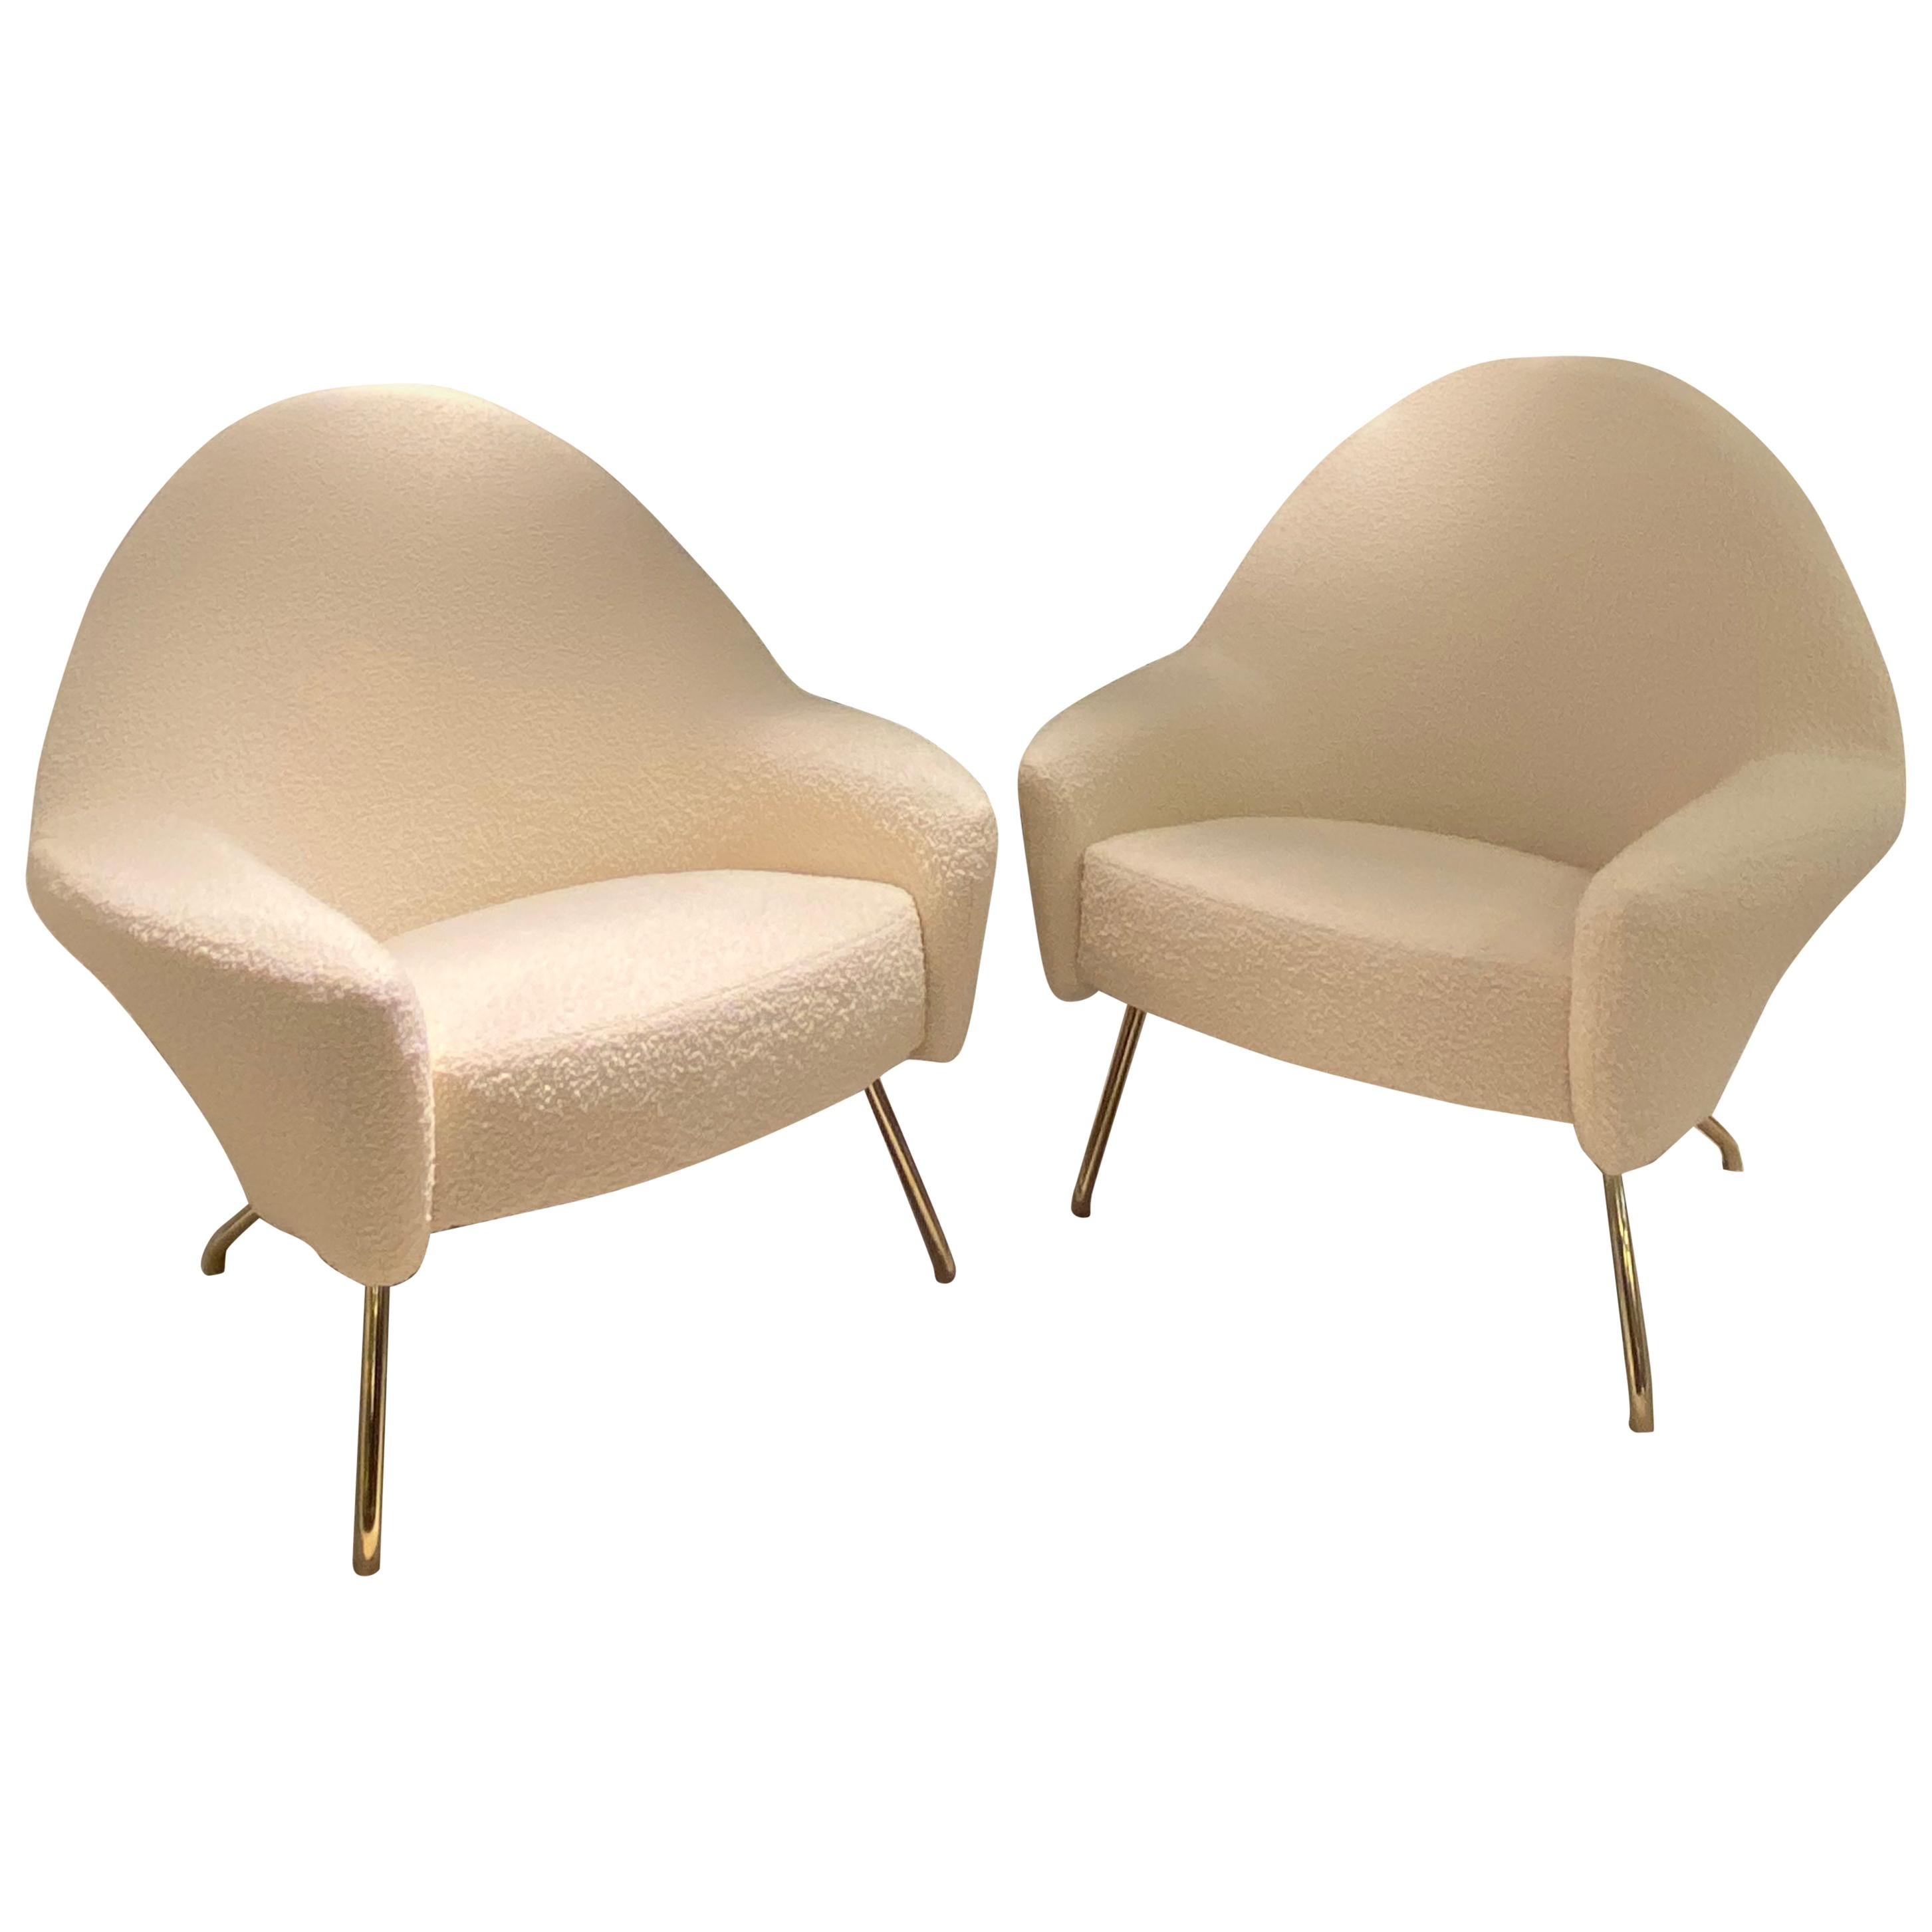 Pair of 1950s Armchairs by Joseph Andre Motte